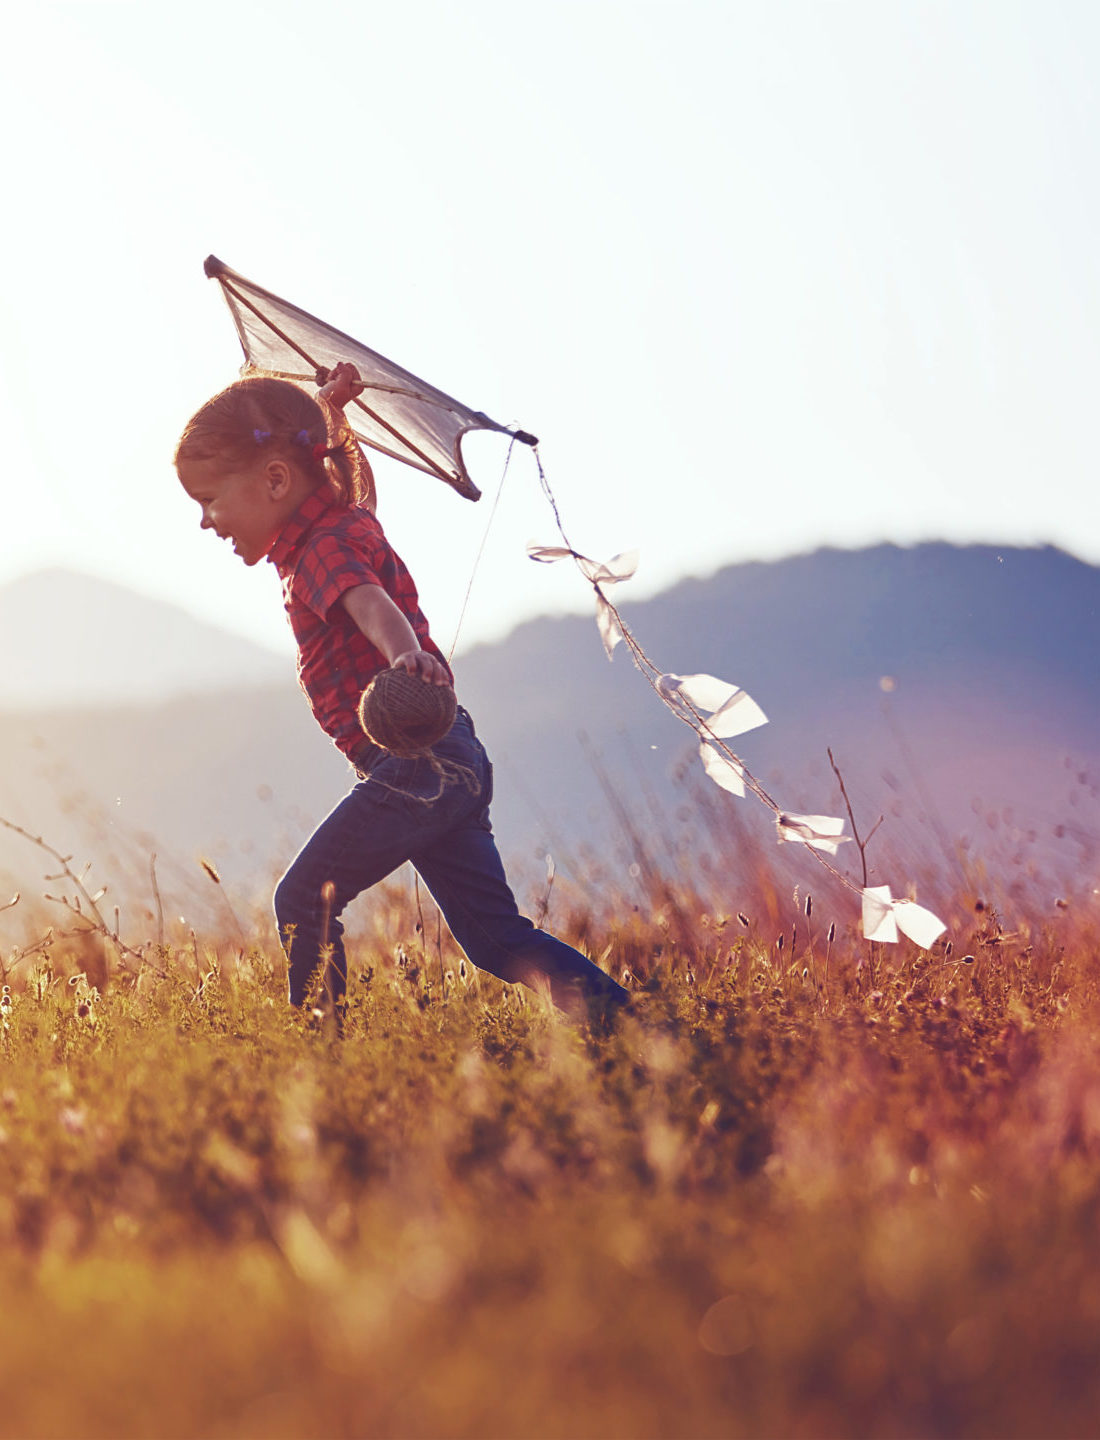 MiTek's commitment to communities - Girl running in the grass with a kite